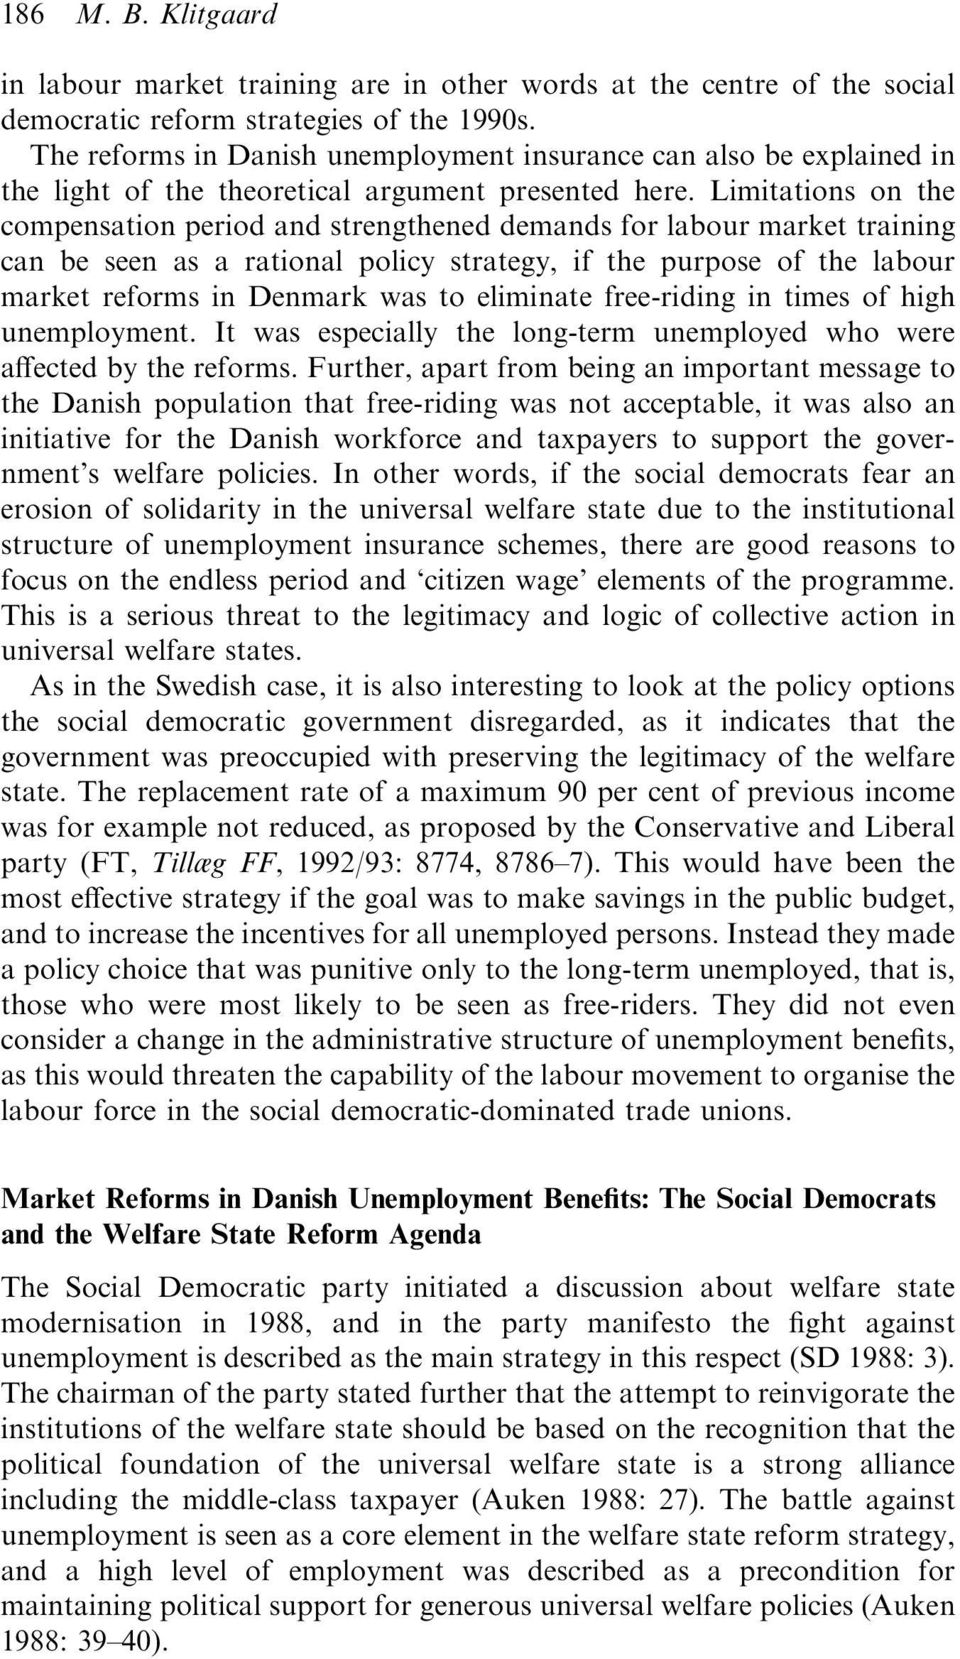 Limitations on the compensation period and strengthened demands for labour market training can be seen as a rational policy strategy, if the purpose of the labour market reforms in Denmark was to